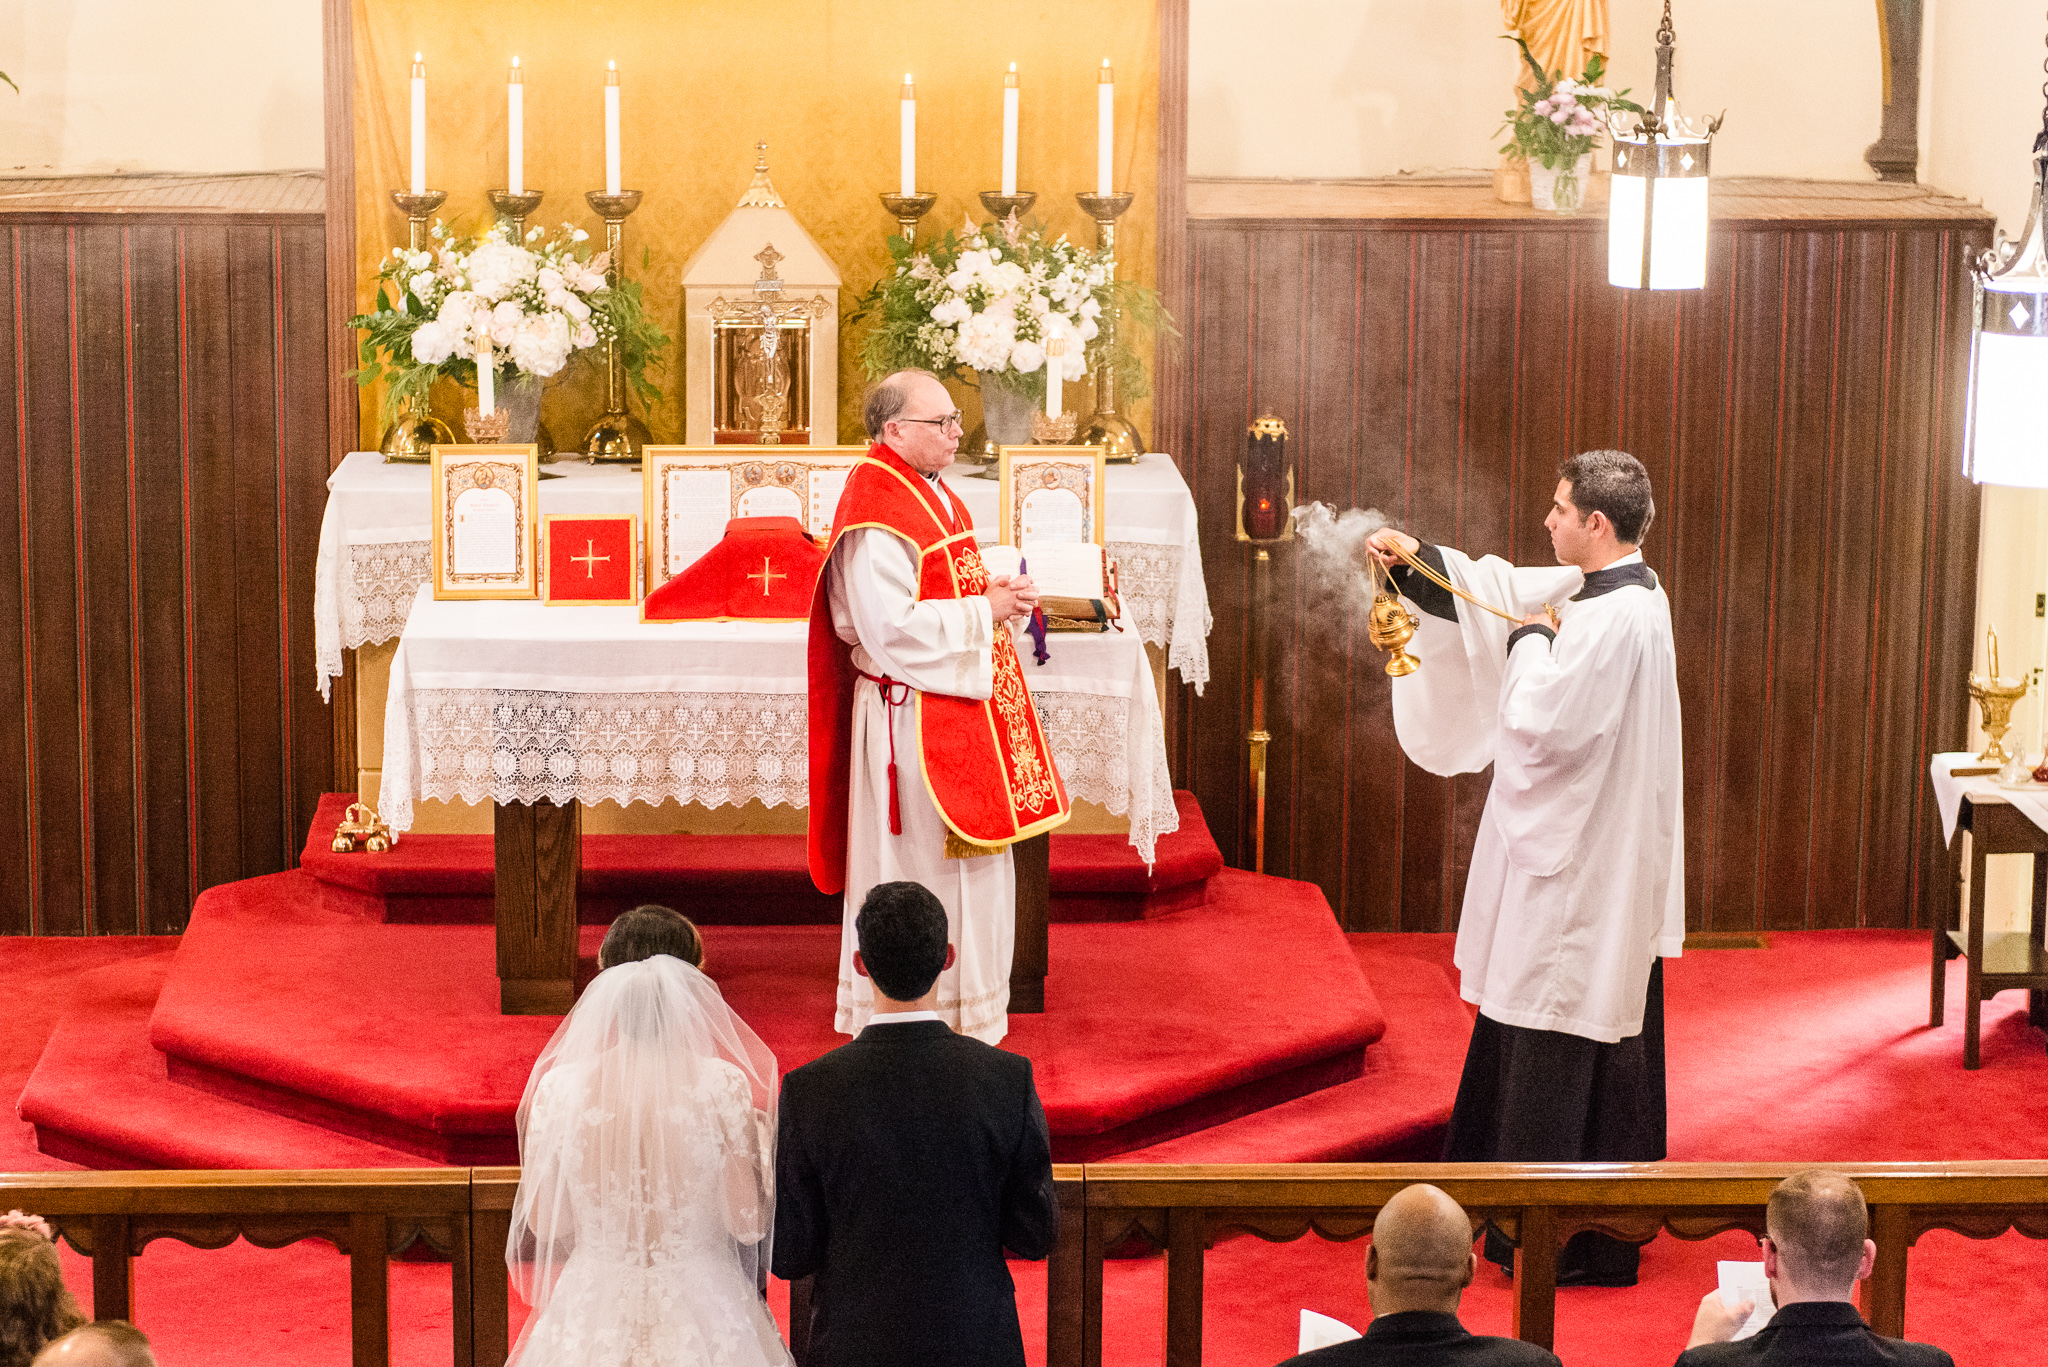 An altar server spreads incense before a priest for a Traditional Latin Mass during a Catholic wedding ceremony at the Chapel of Immaculate Conception in Leesburg, Northern Virginia